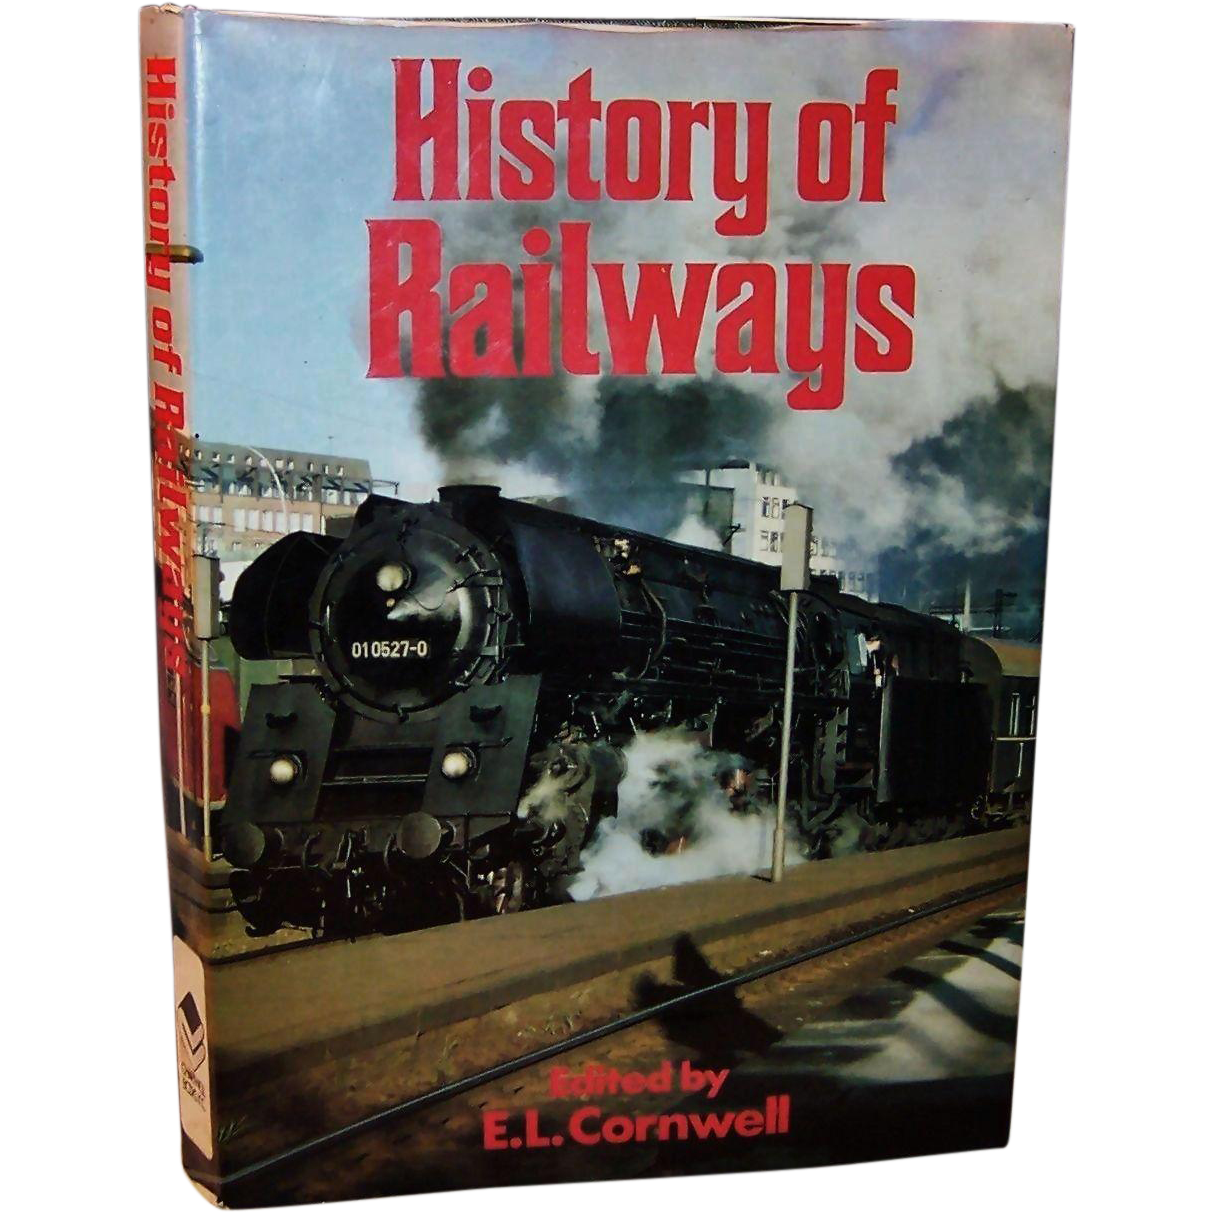 History Of Railways by E.L. Cornwell - 1976